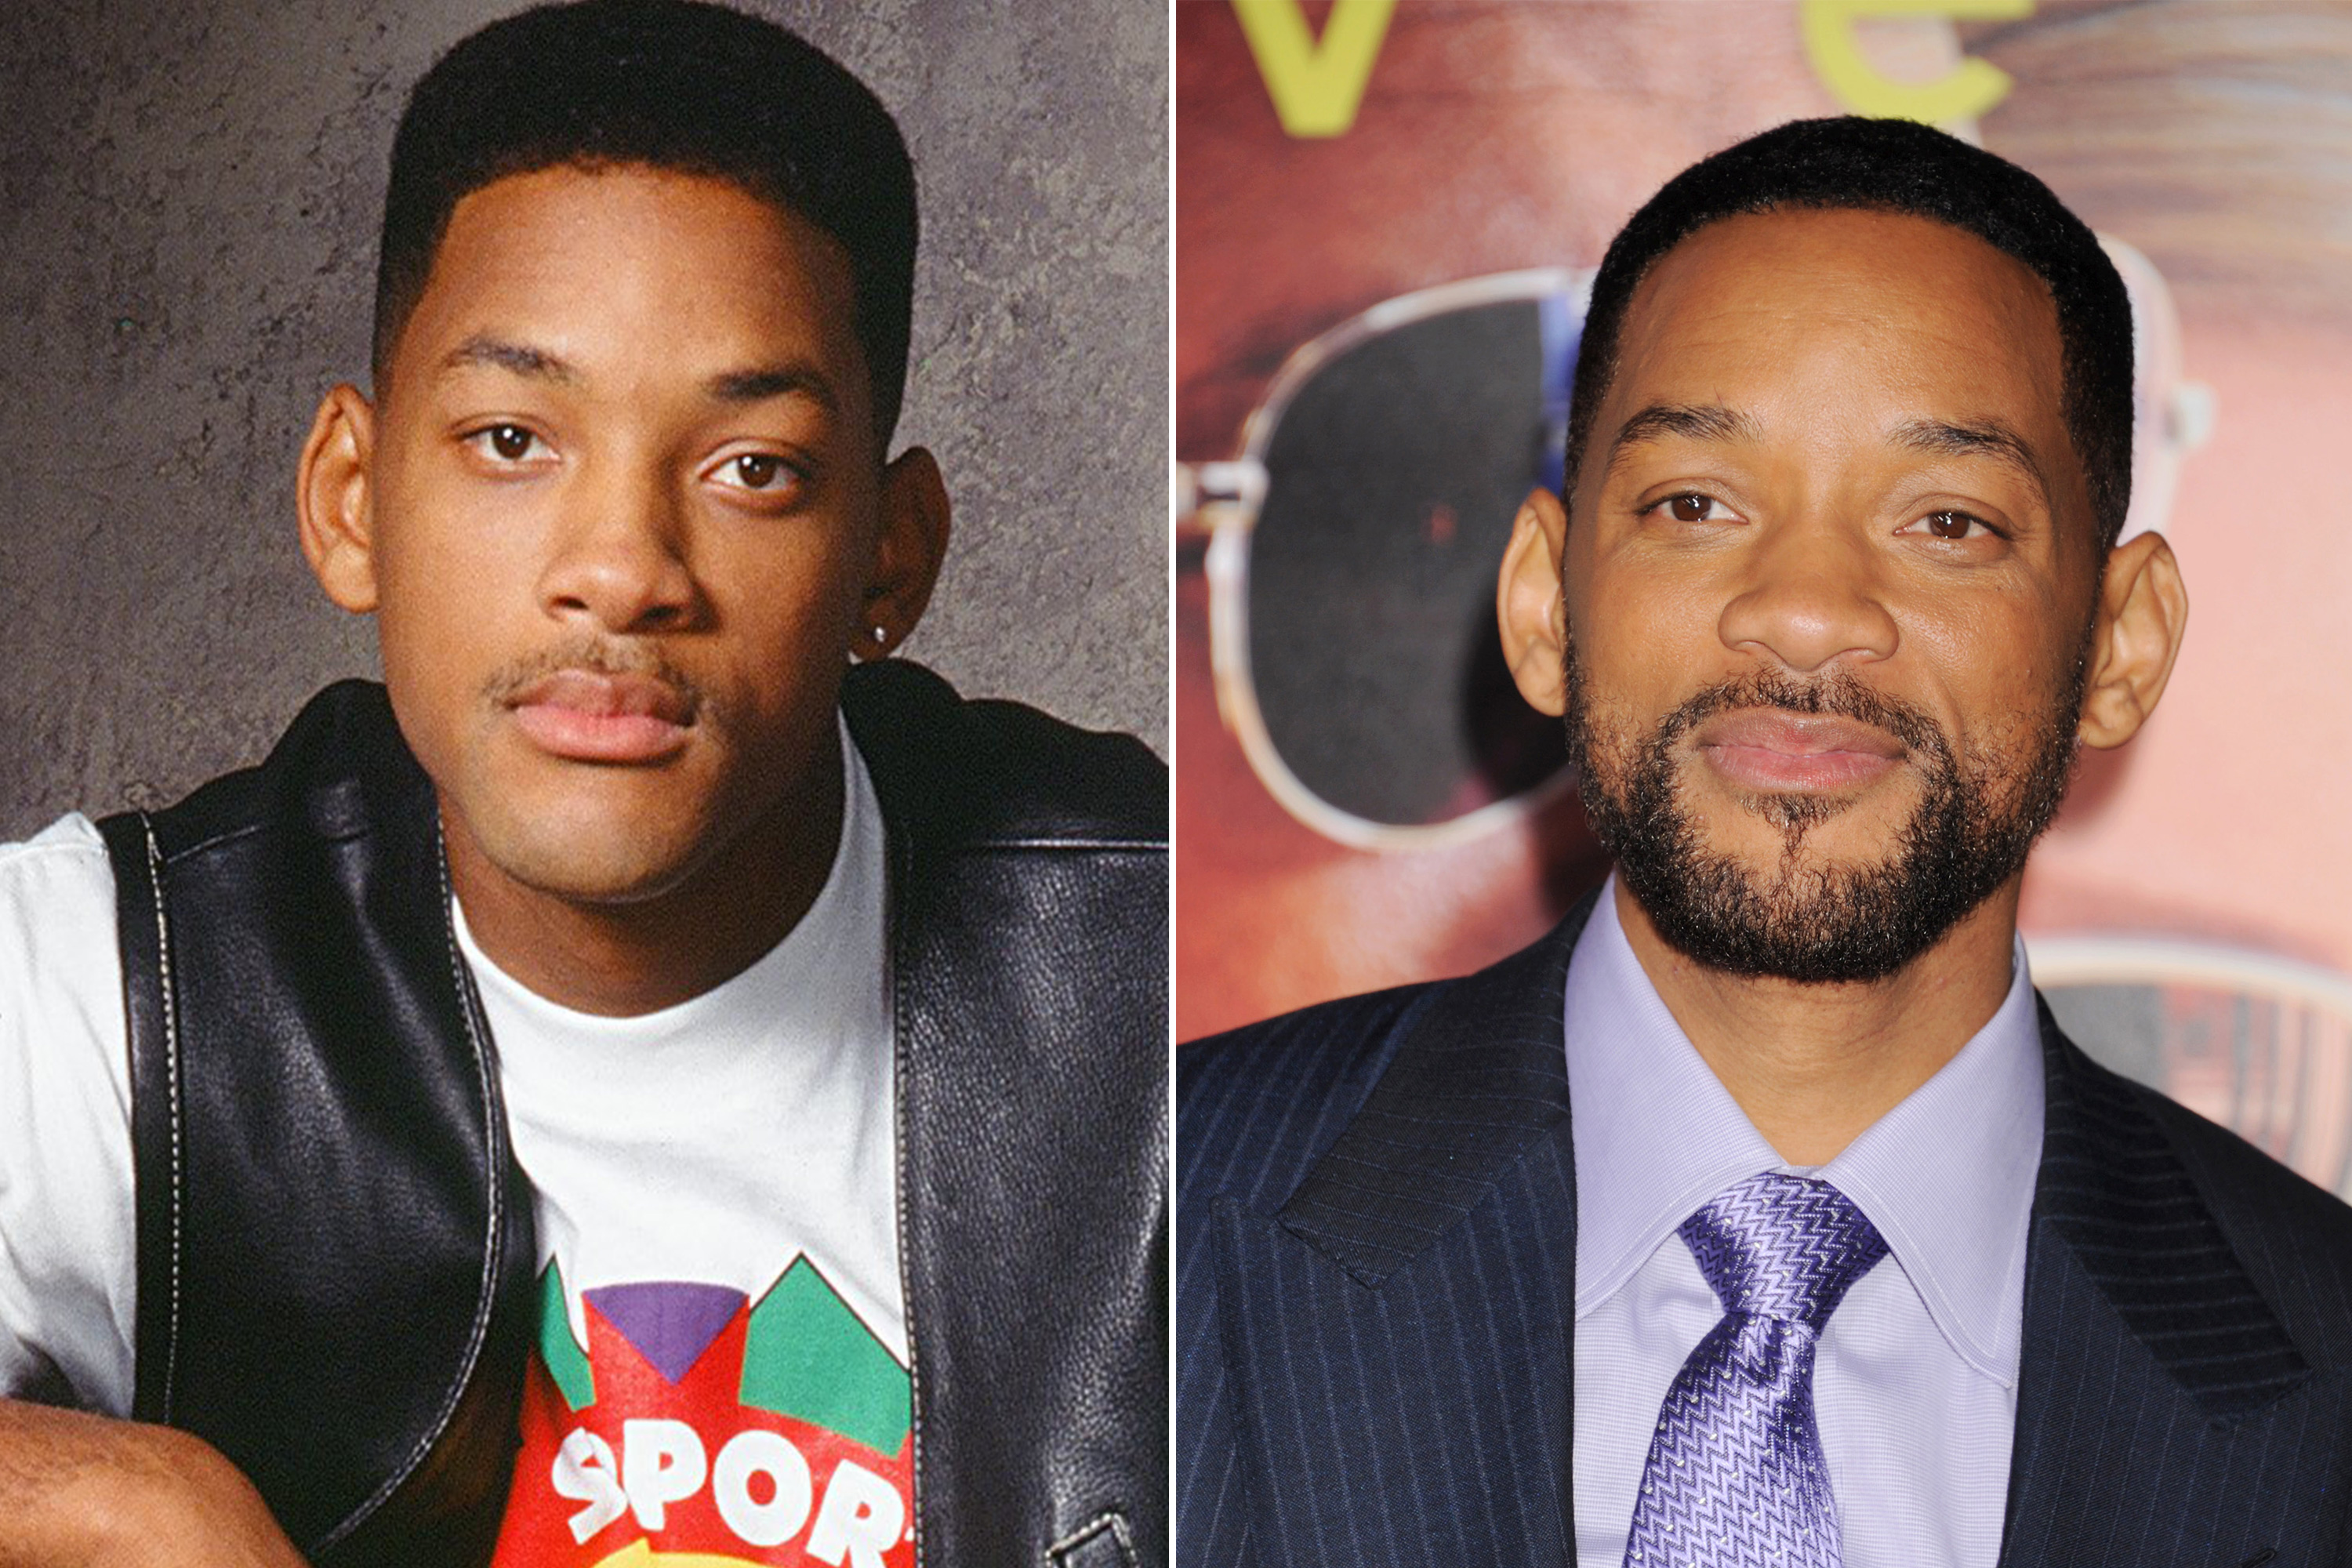 Will Smith as William Smith